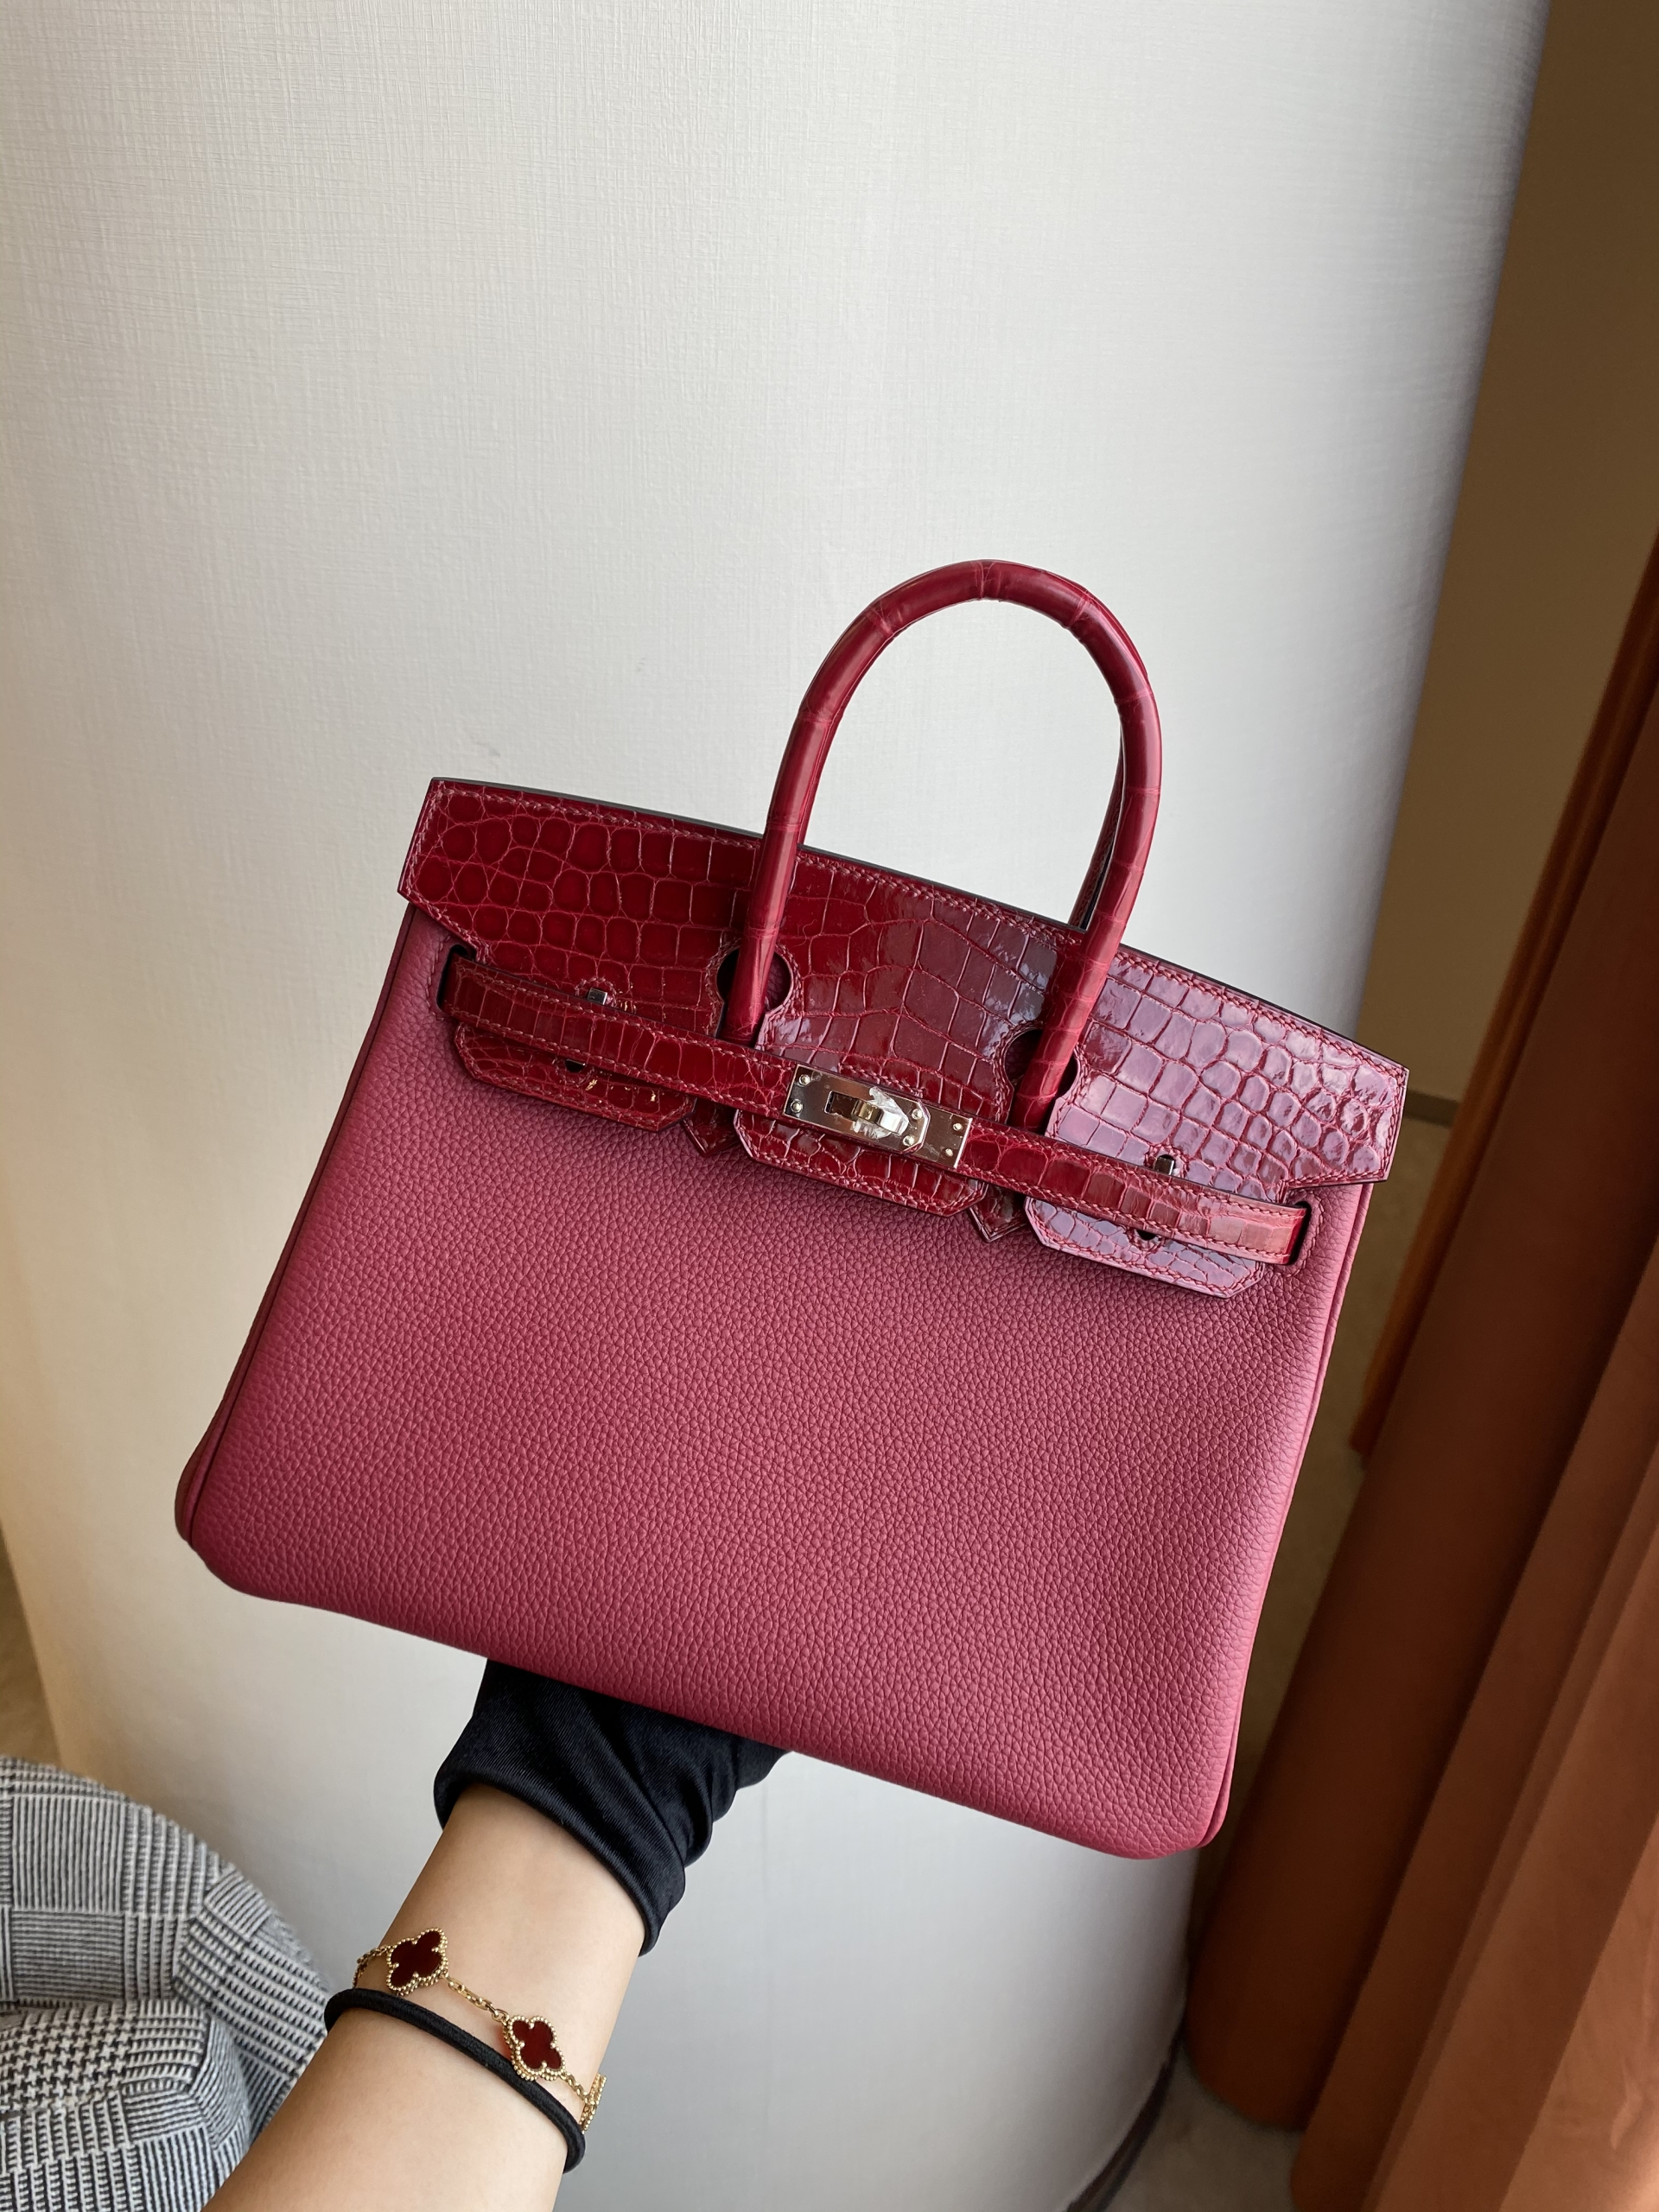 Hong Kong South Hermès Birkin Touch 25cm polished Mississippiensis alligator